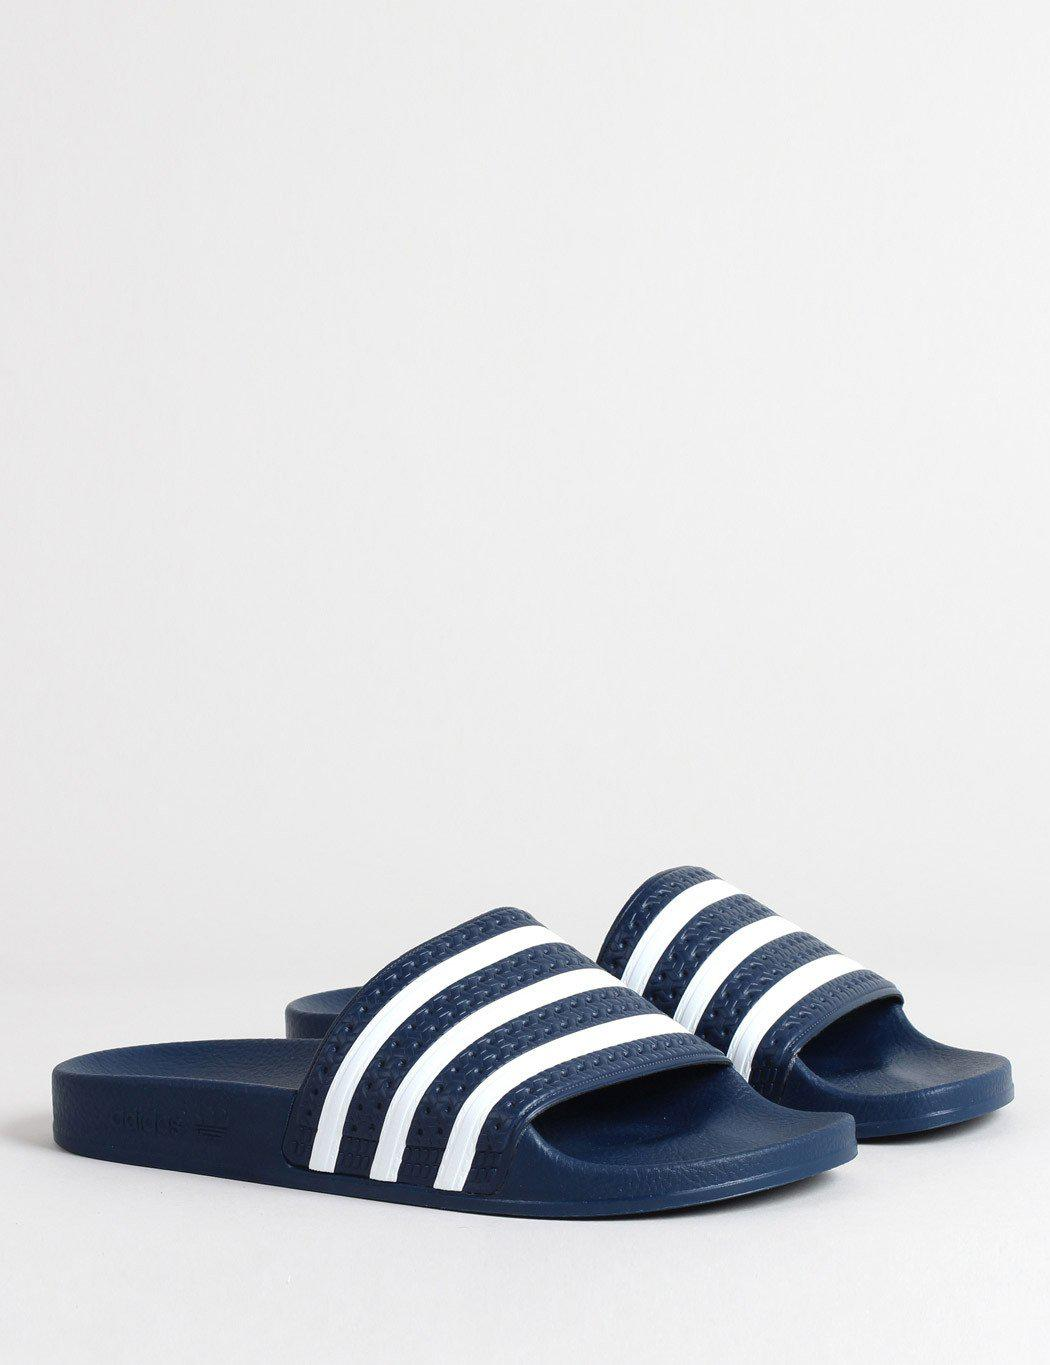 81b976439c29 adidas Originals Adidas Adilette Slides (288022) in Blue for Men - Save 33%  - Lyst